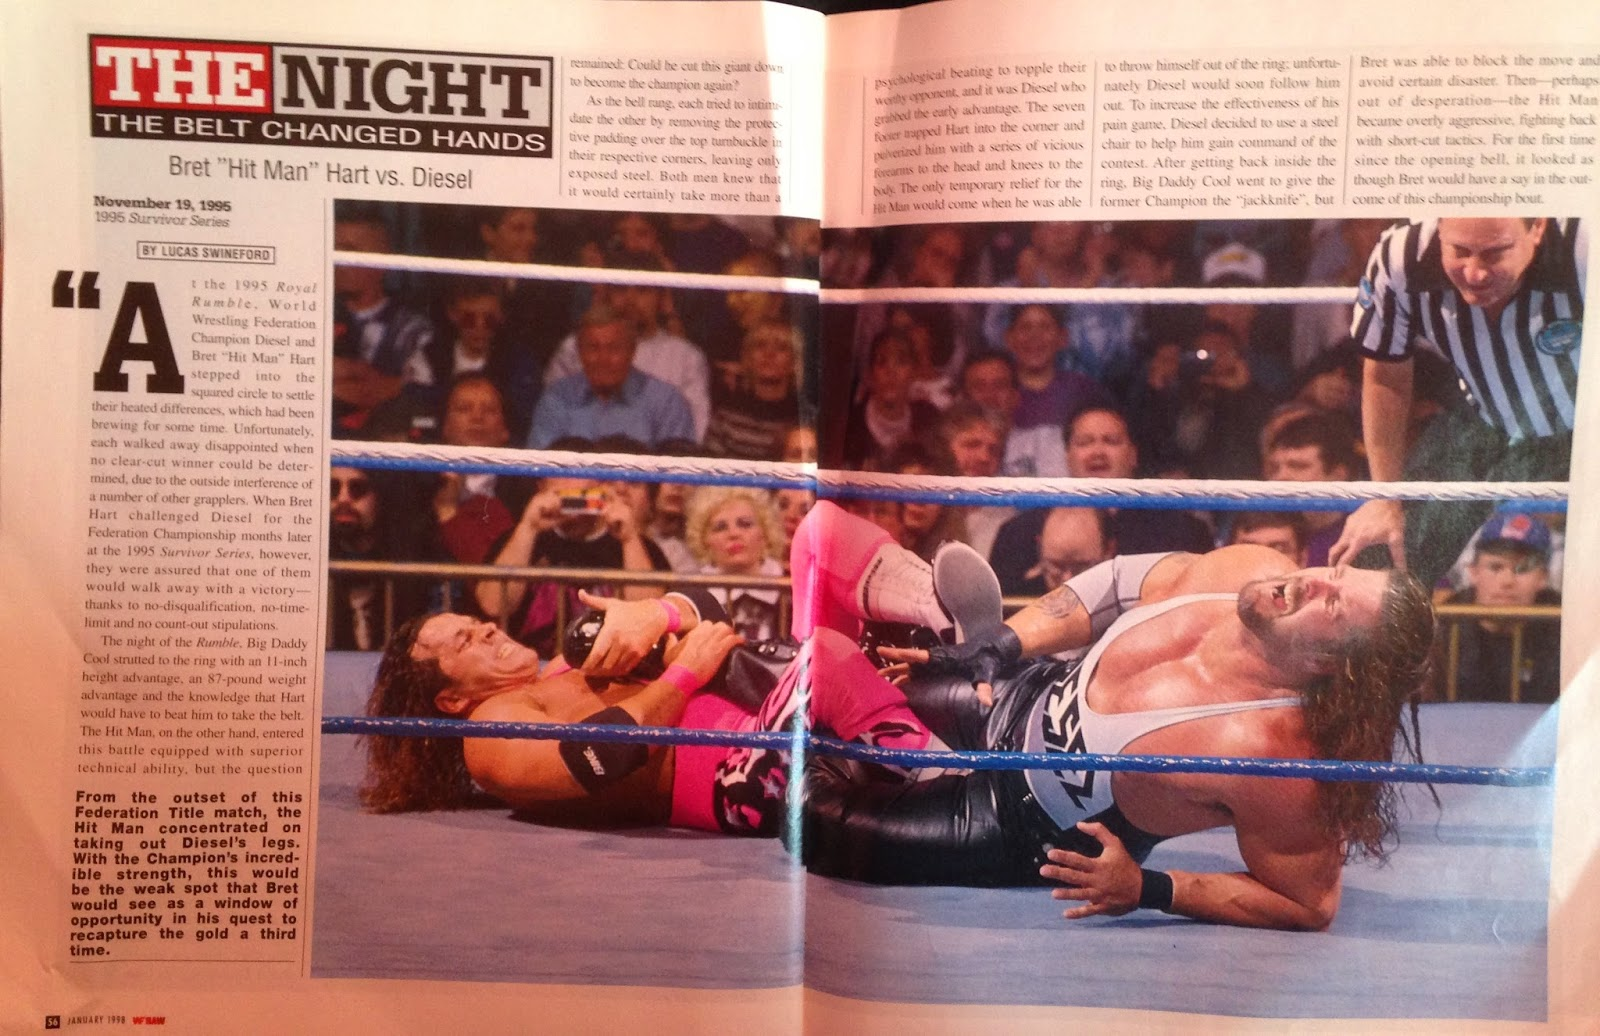 WWE: WWF RAW MAGAZINE - January 1998 - Bret Hart vs. Diesel Survivor Series 1995 recap